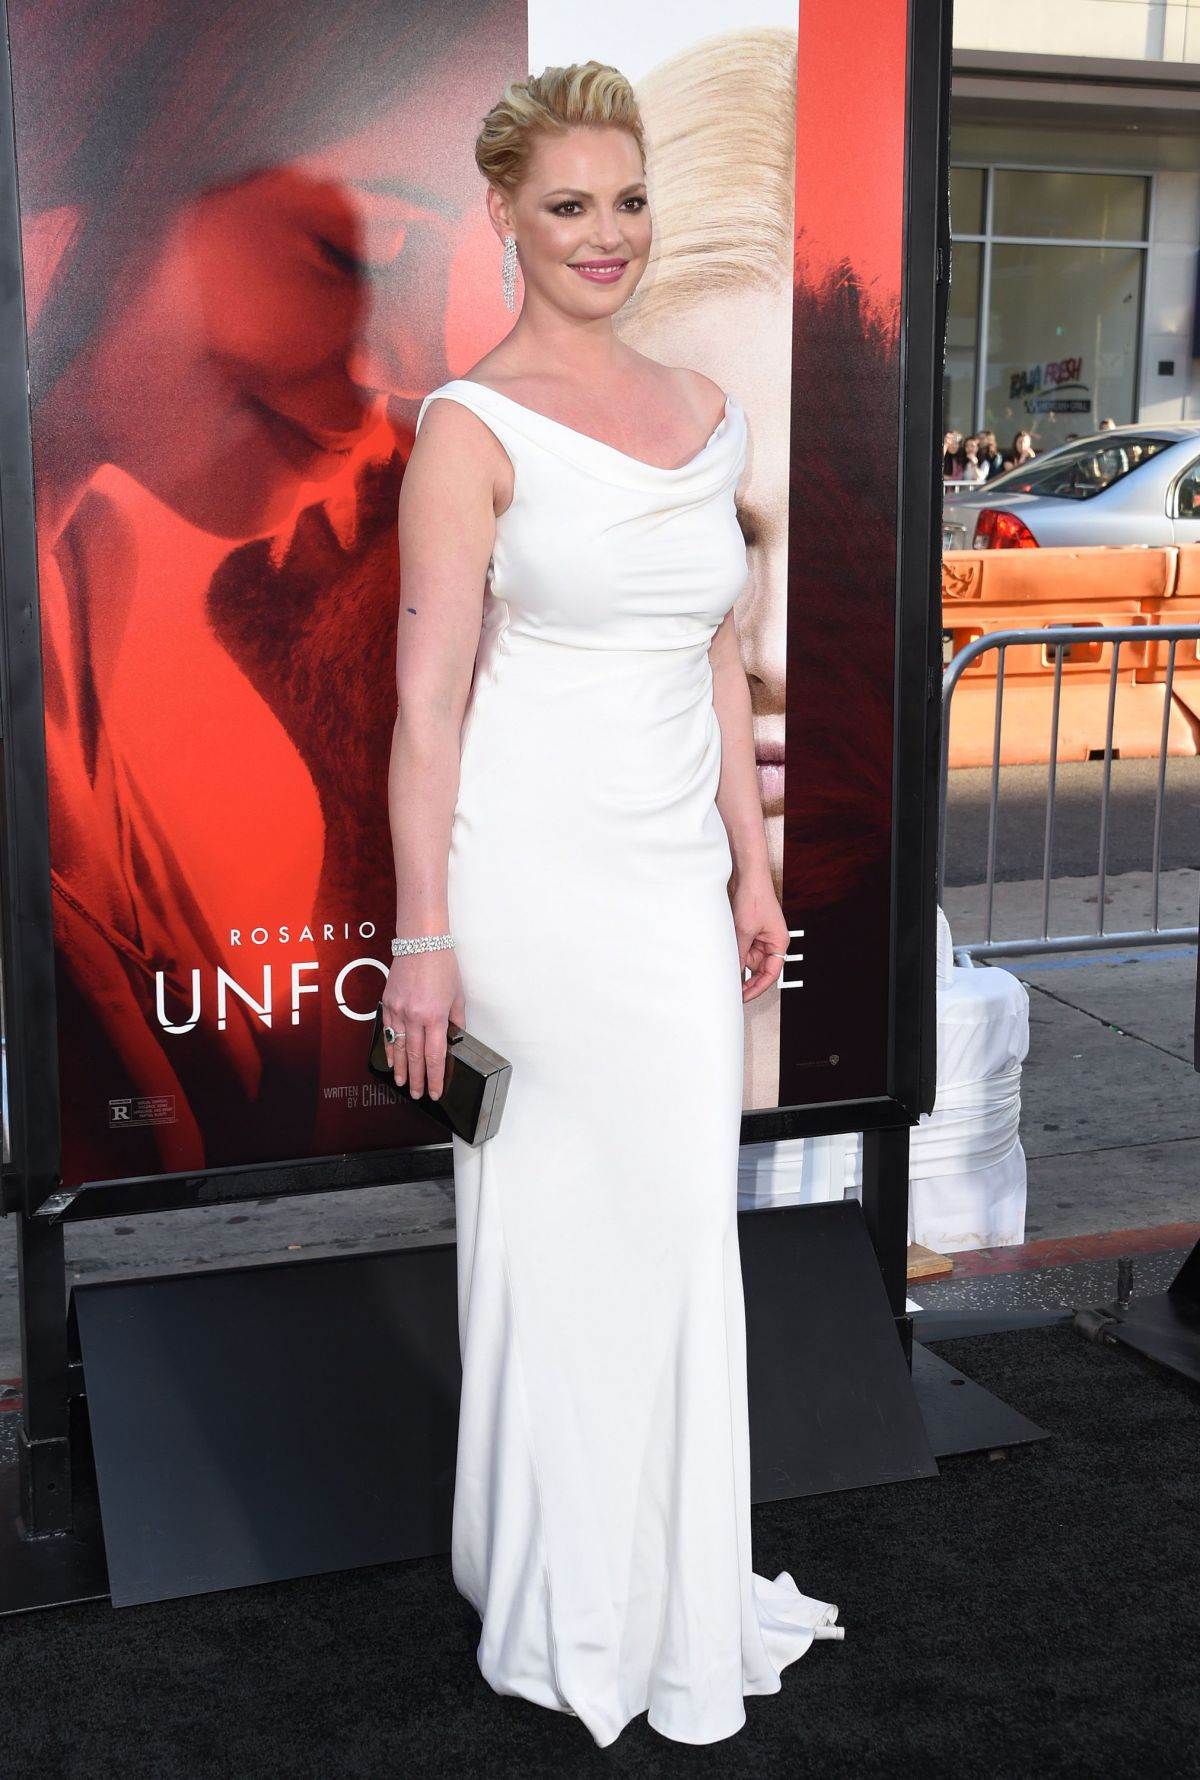 KATHERINE HEIGL at Unforgettable Premiere in Los Angeles ...